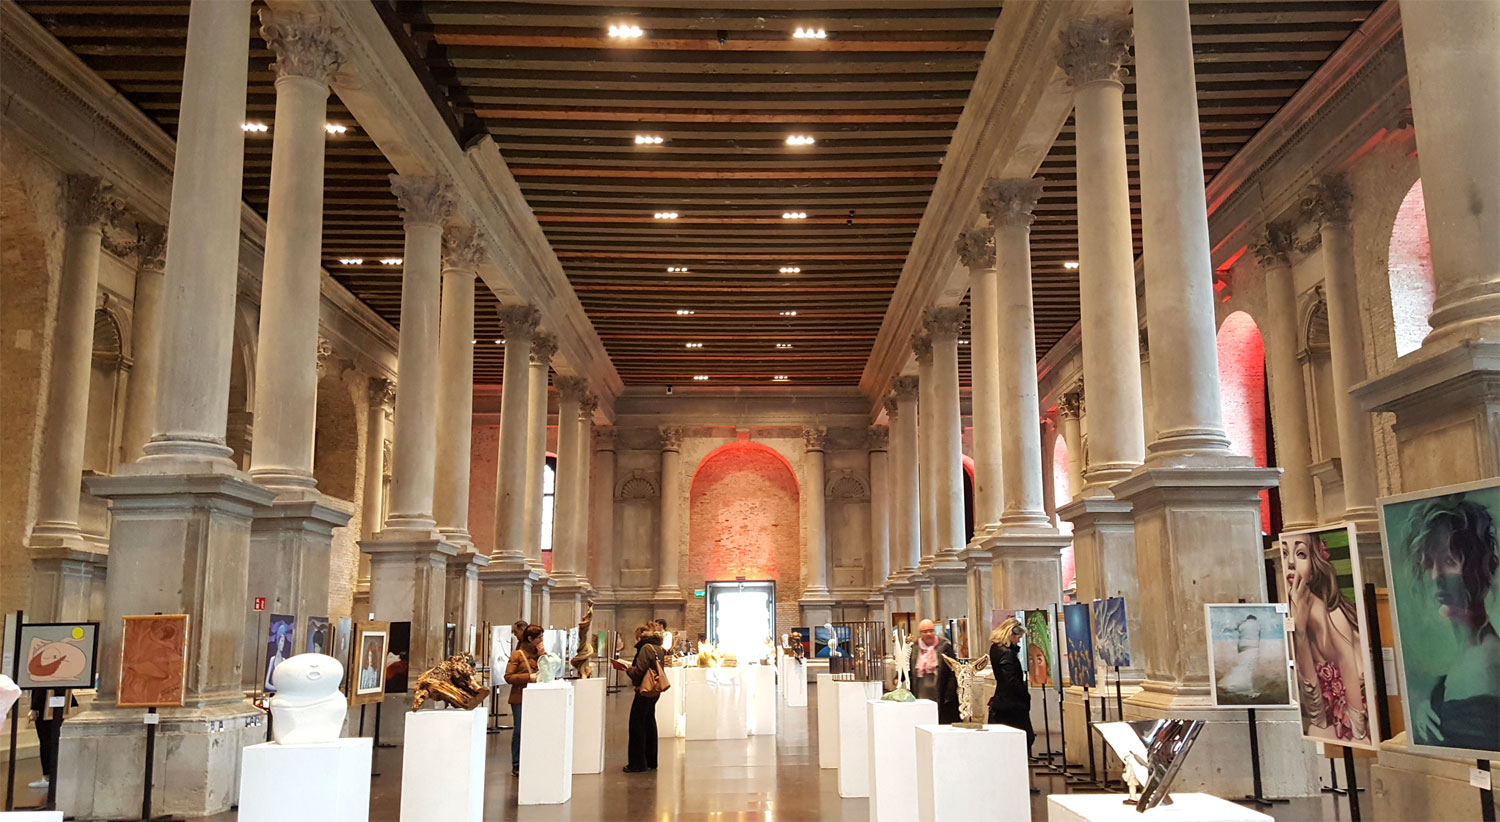 Venezia-art-expo-hall